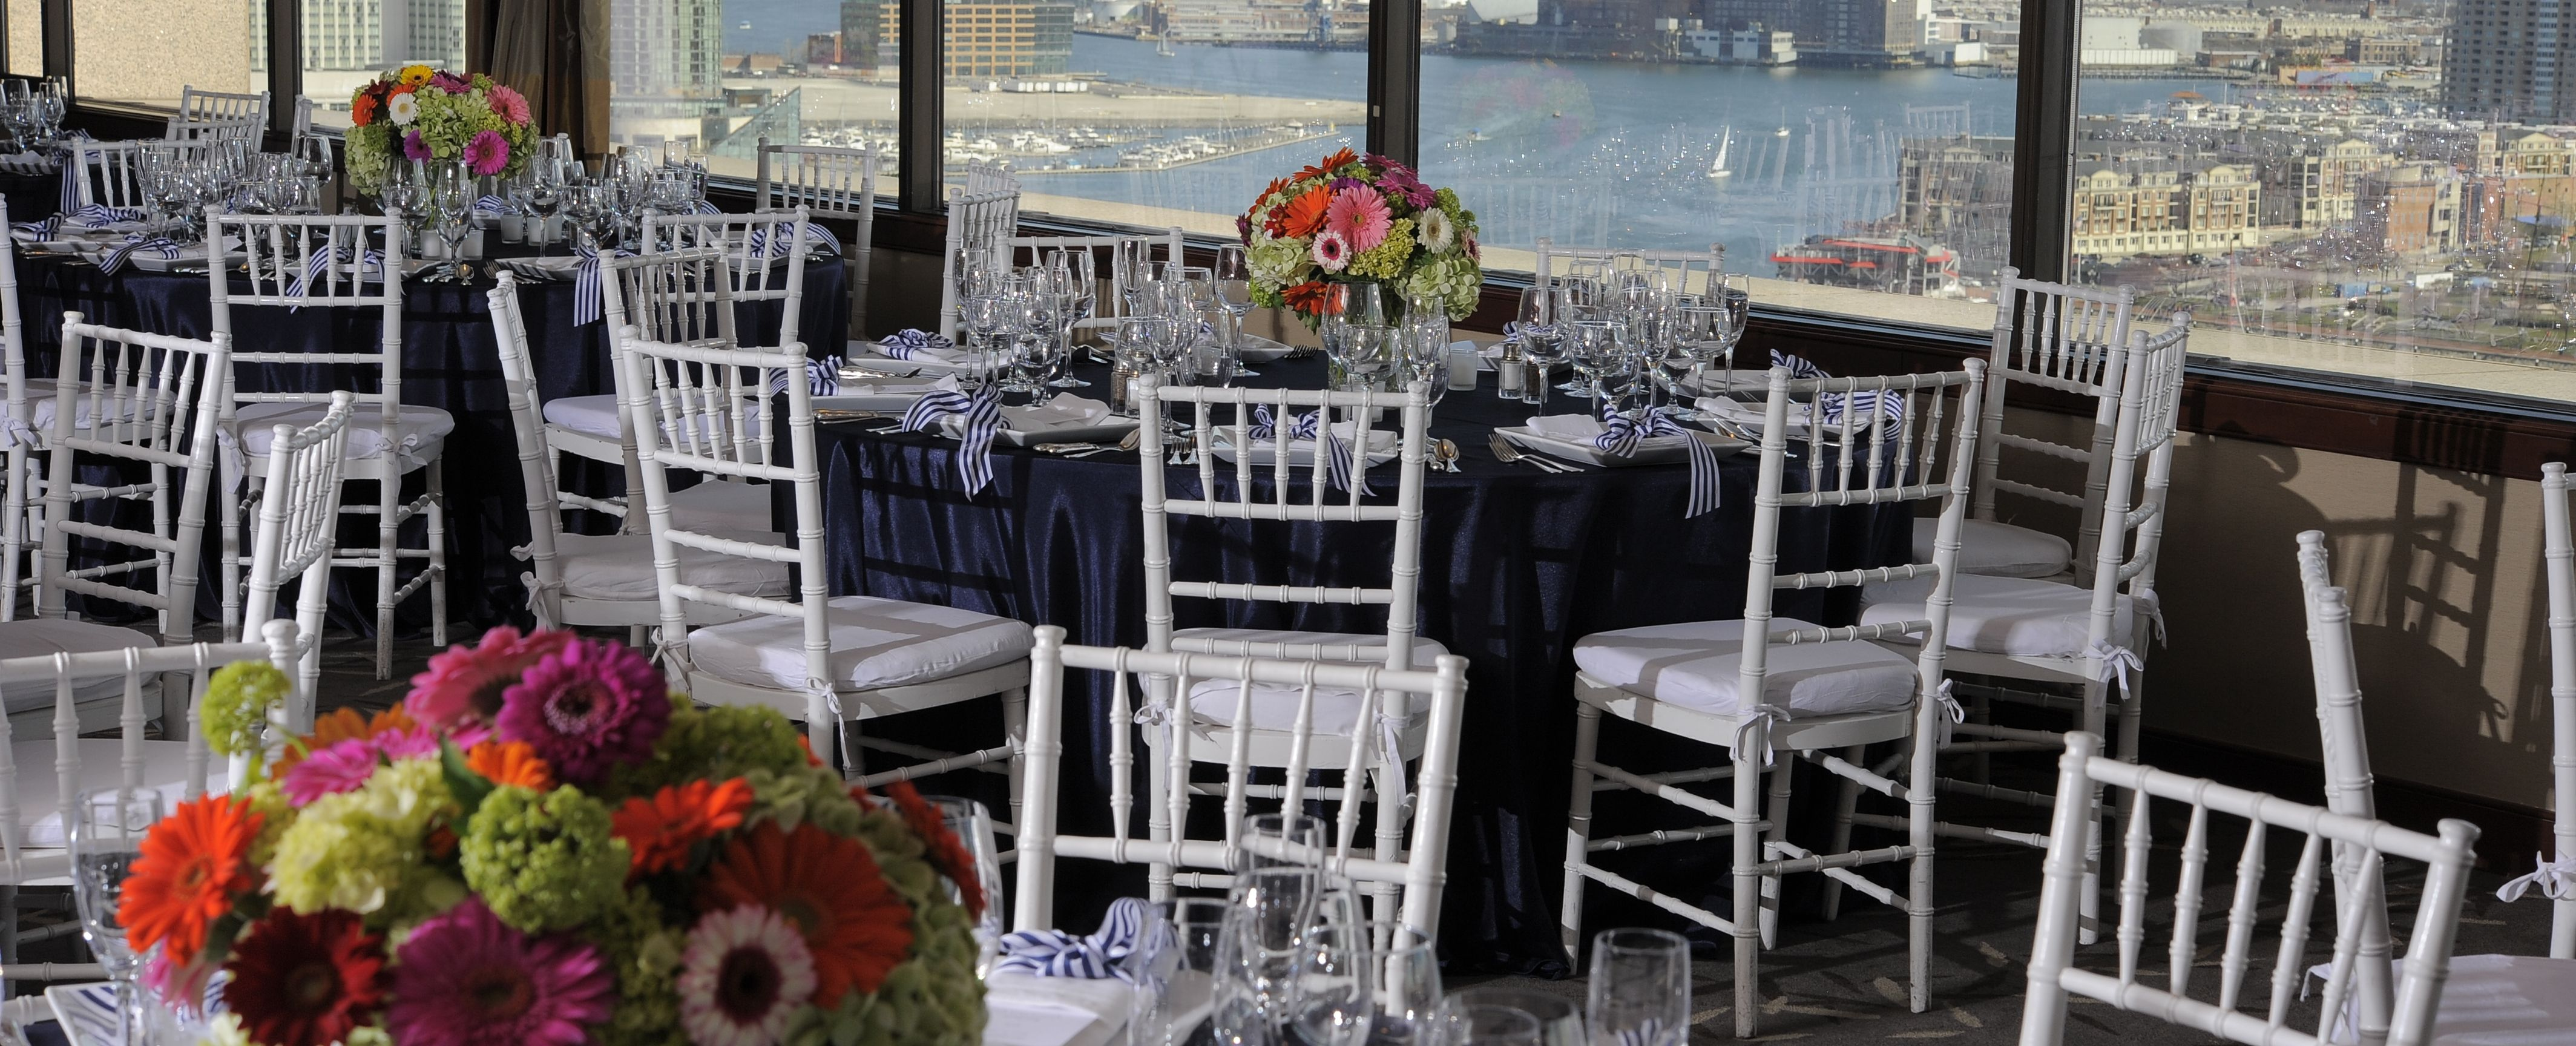 wedding reception venues cost%0A The Center Club Weddings  Price out and compare wedding costs for wedding  ceremony and reception venues in Baltimore  MD